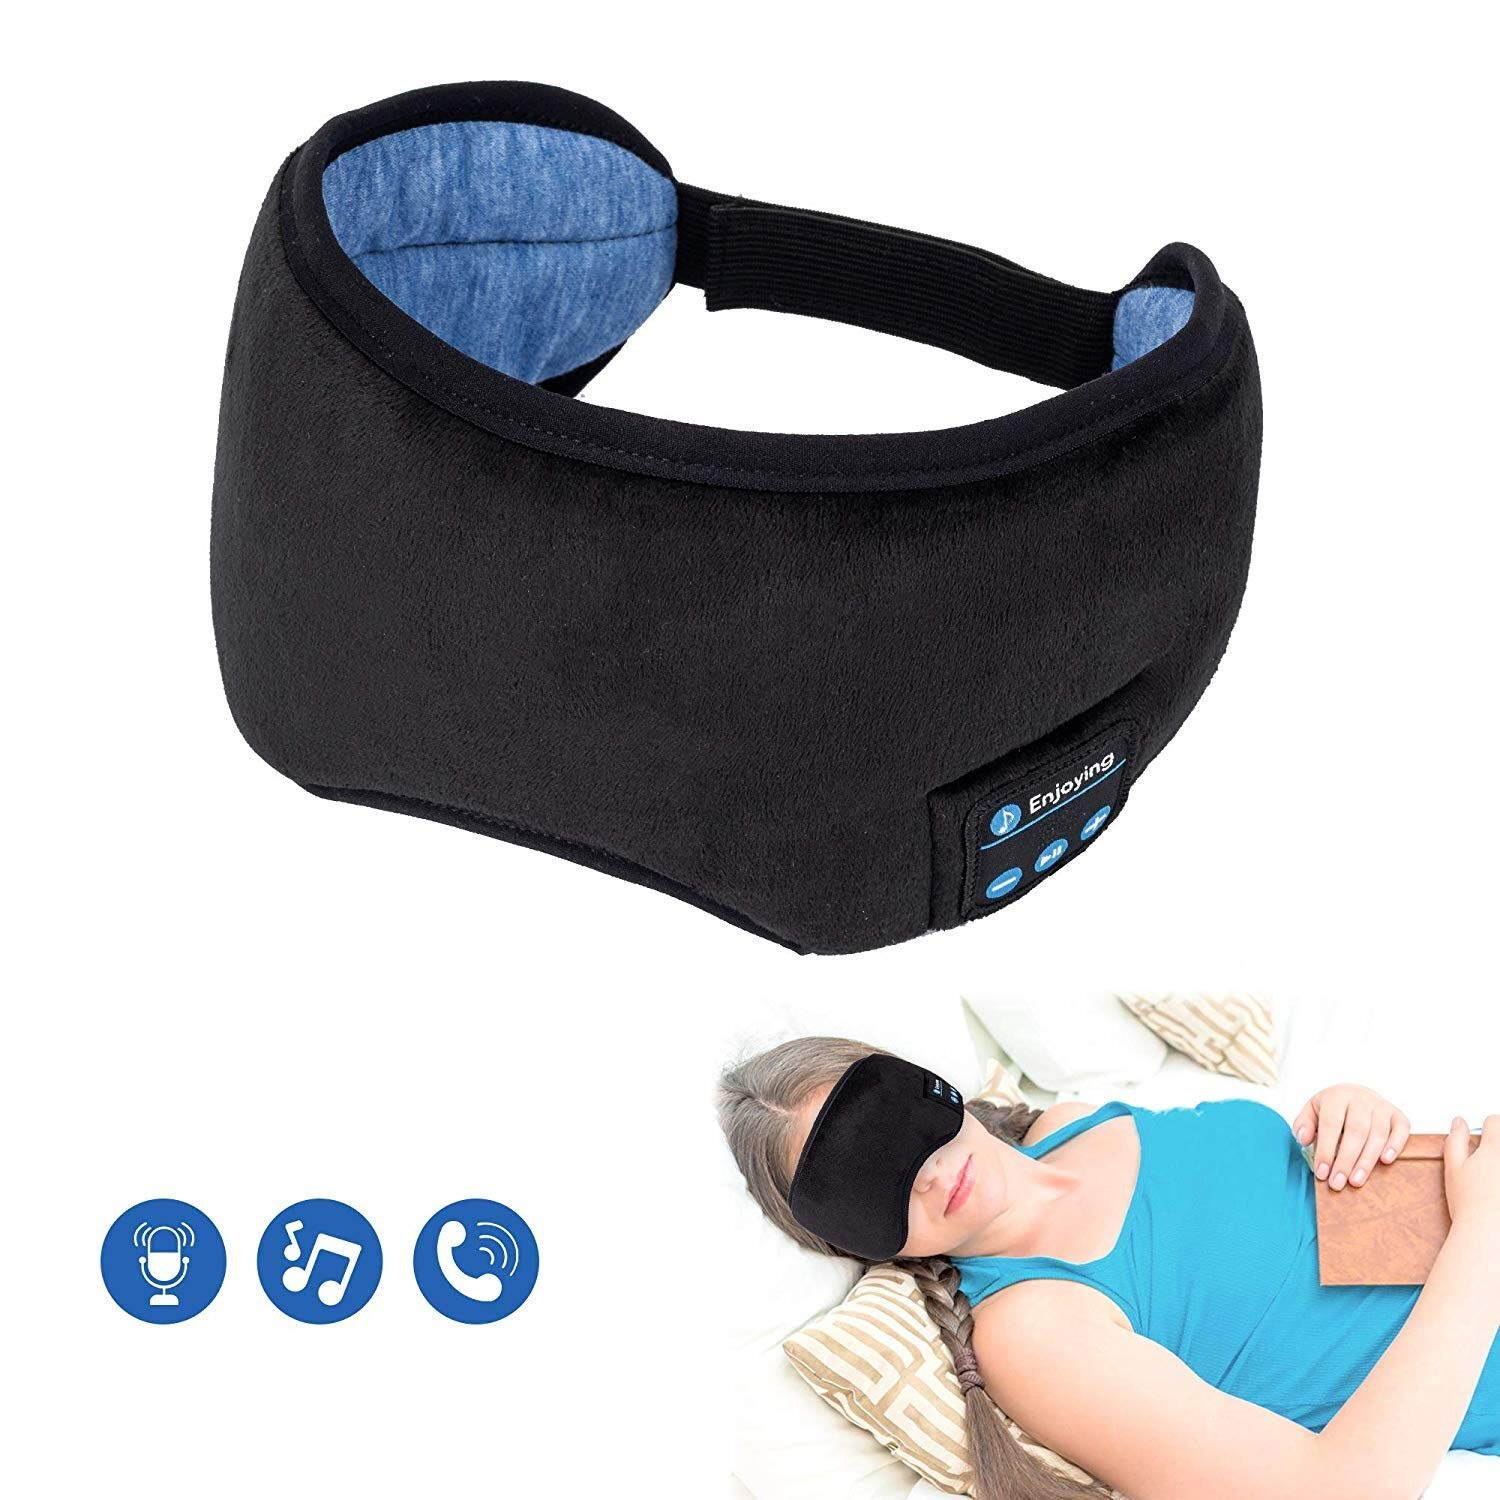 Voerou Sleep Eye Mask Wireless Sleep Headphones Music and Ultra Thin Speakers Perfect for Sleeping, Air Travel,Meditation and Relaxation – Black